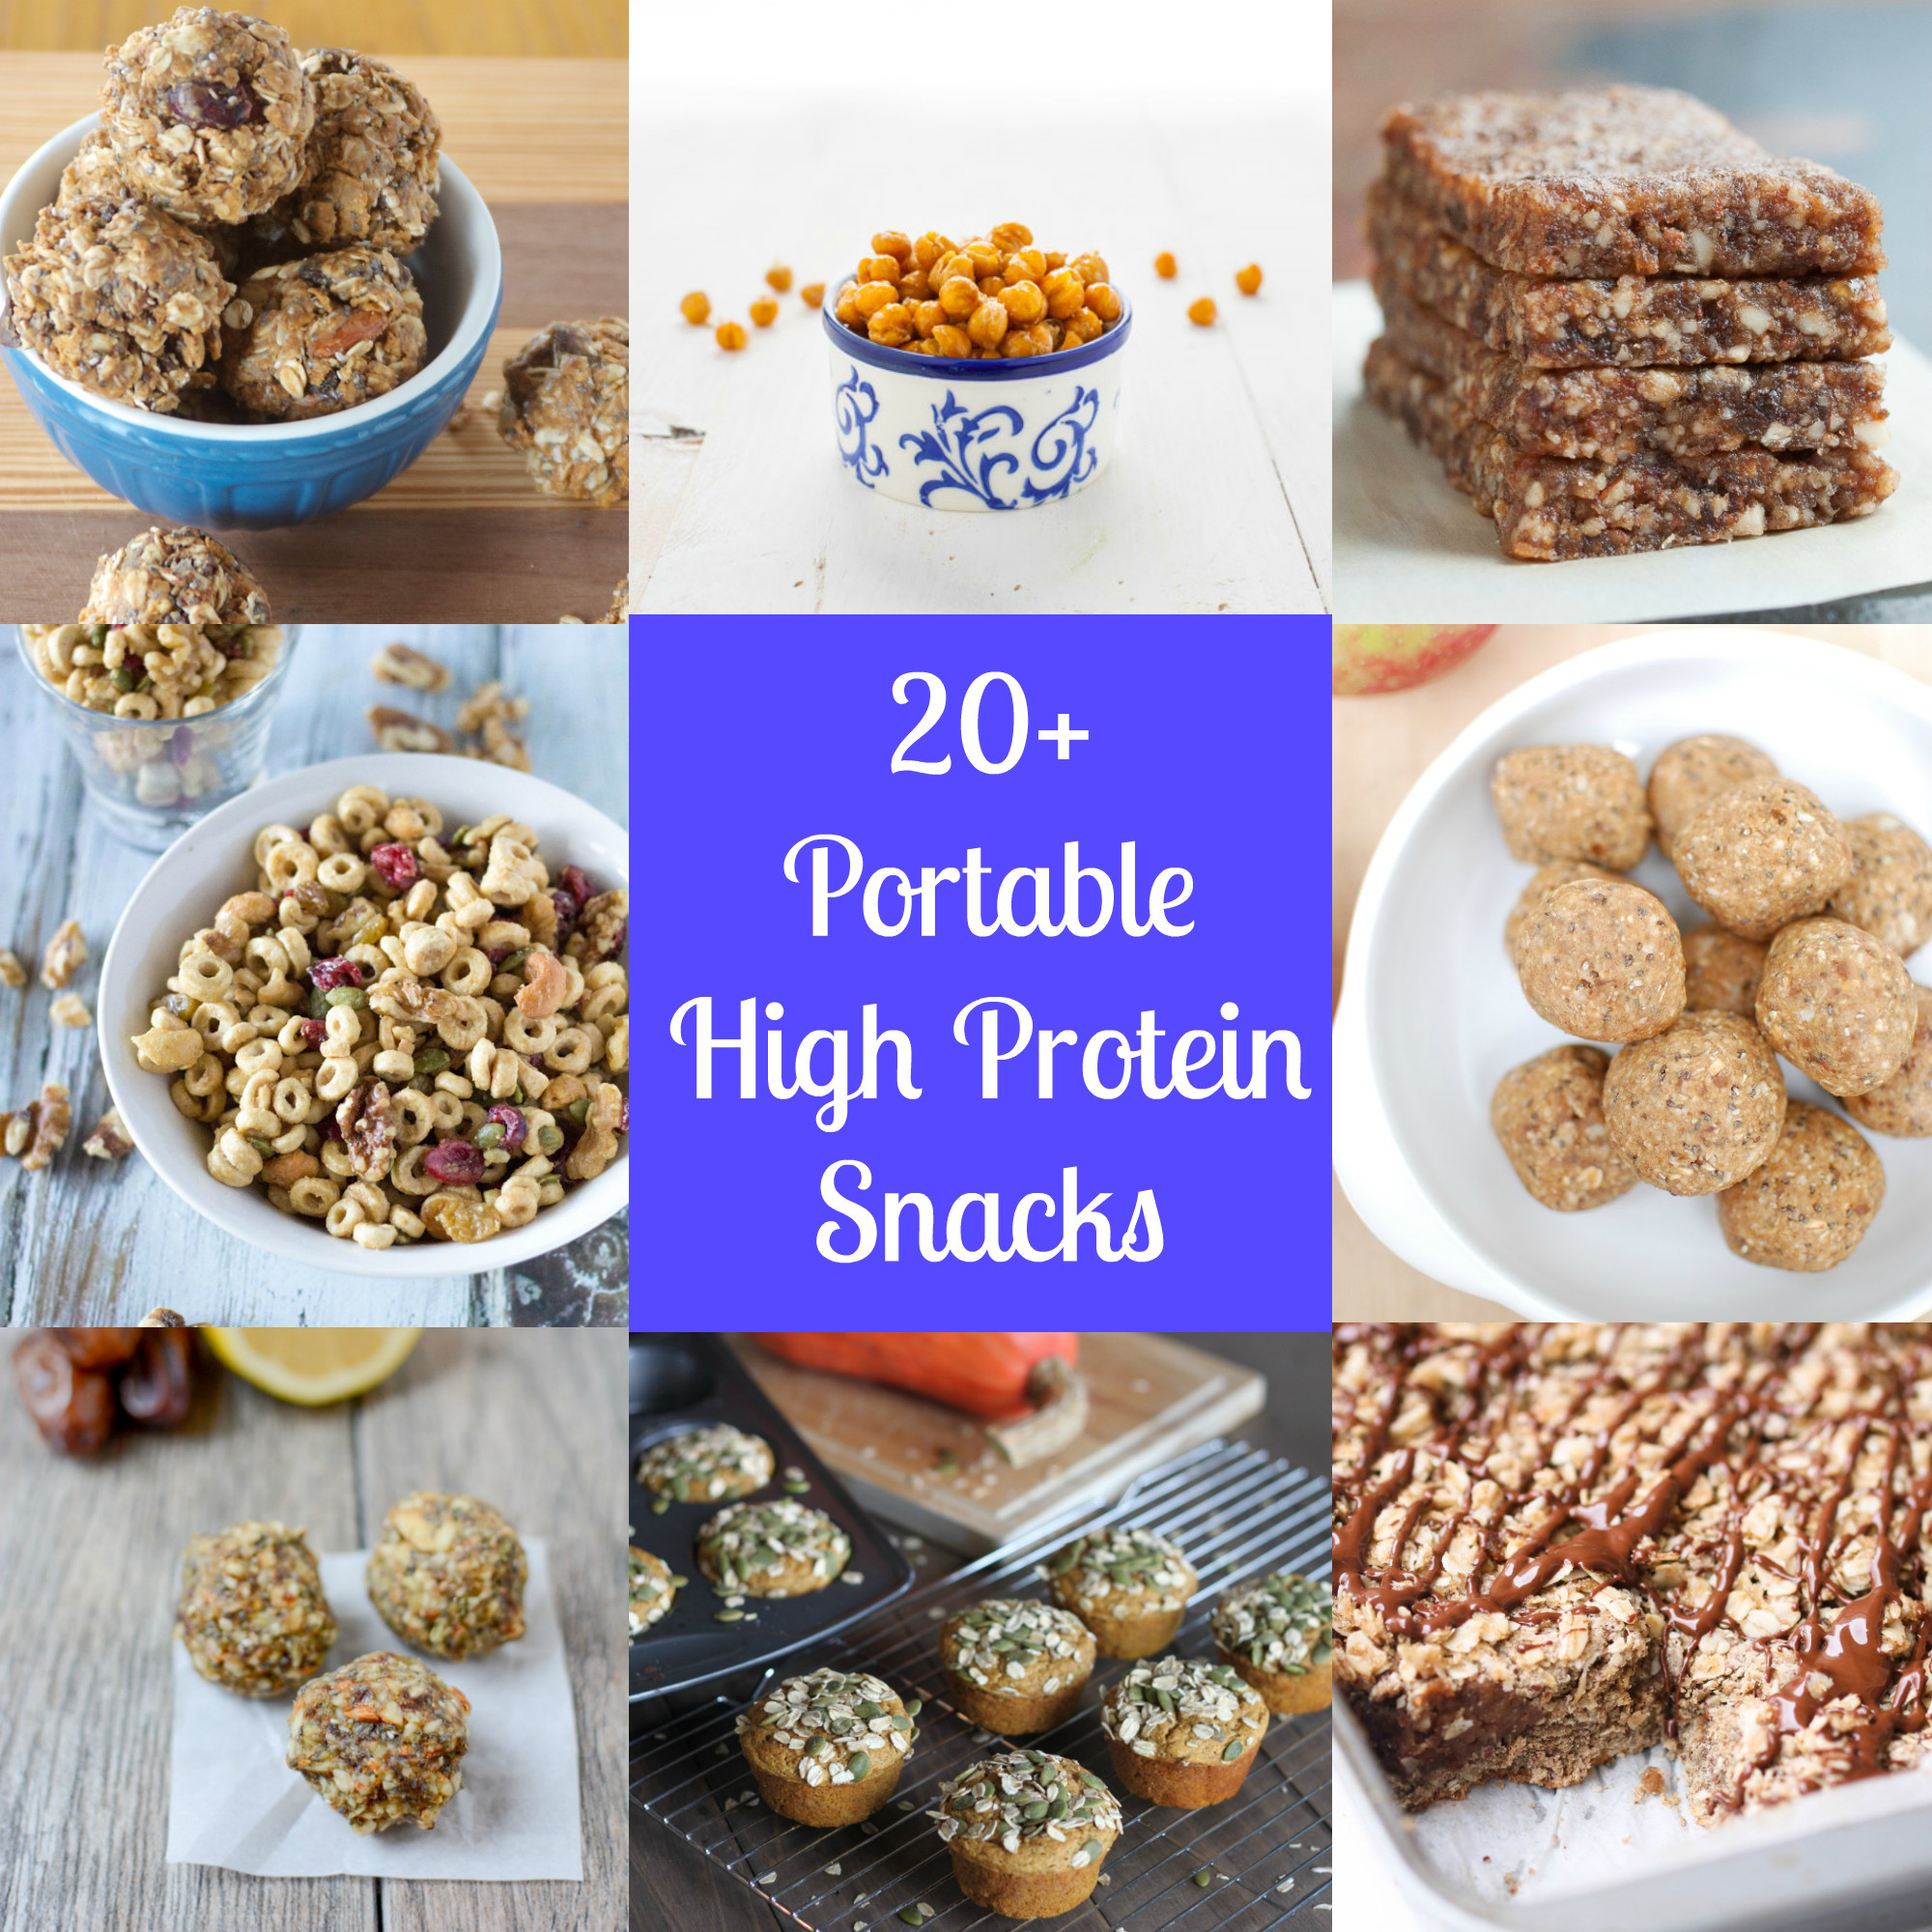 Healthy Snacks High In Protein  Portable High Protein Snacks